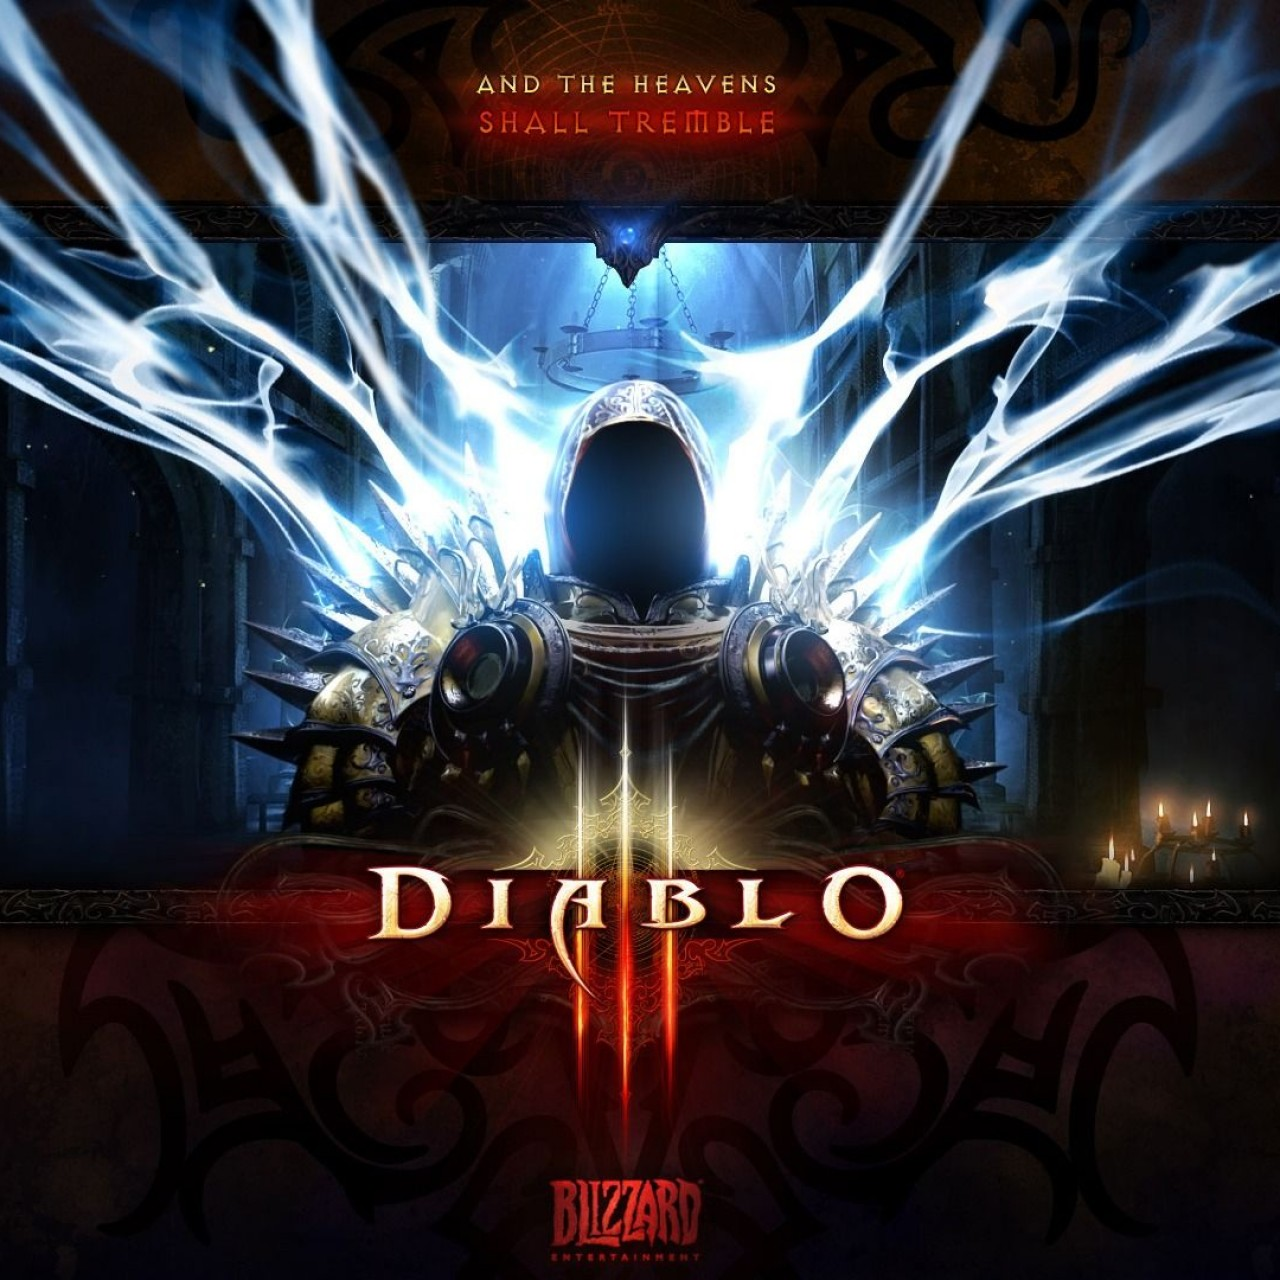 Diablo 3 Wallpaper 1920x1080: Diablo 3 Monk Battlefield 4 Wallpaper 1080p #17140 Hd